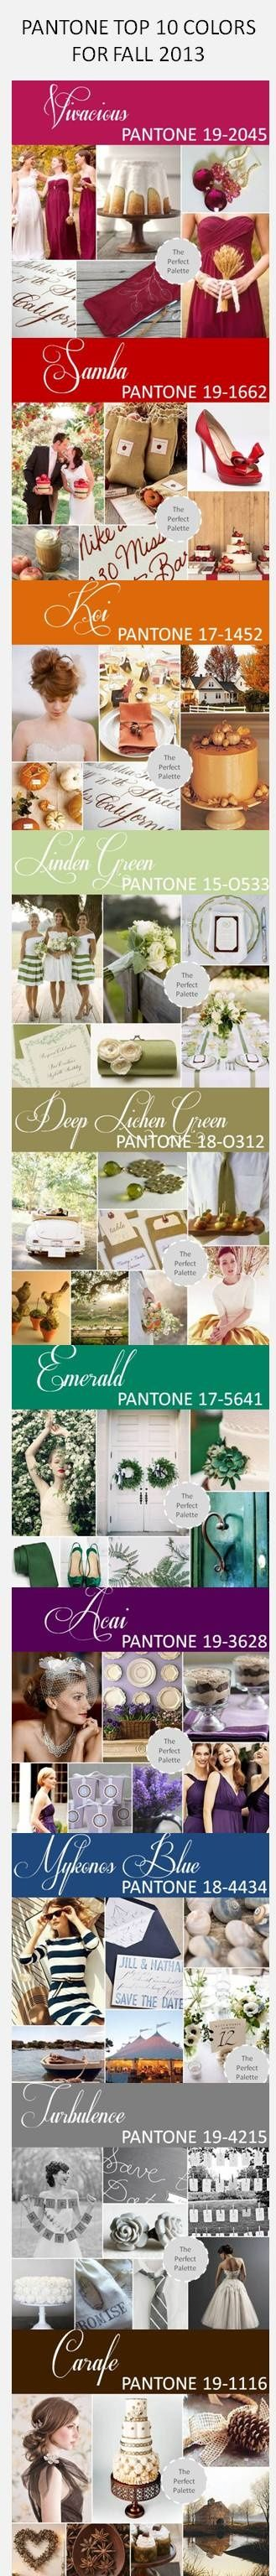 Top 10 Pantone Colors for Fall, 2013! http://www.theperfectpalette.com/2013/03/pantone-color-report-fall-2013.html